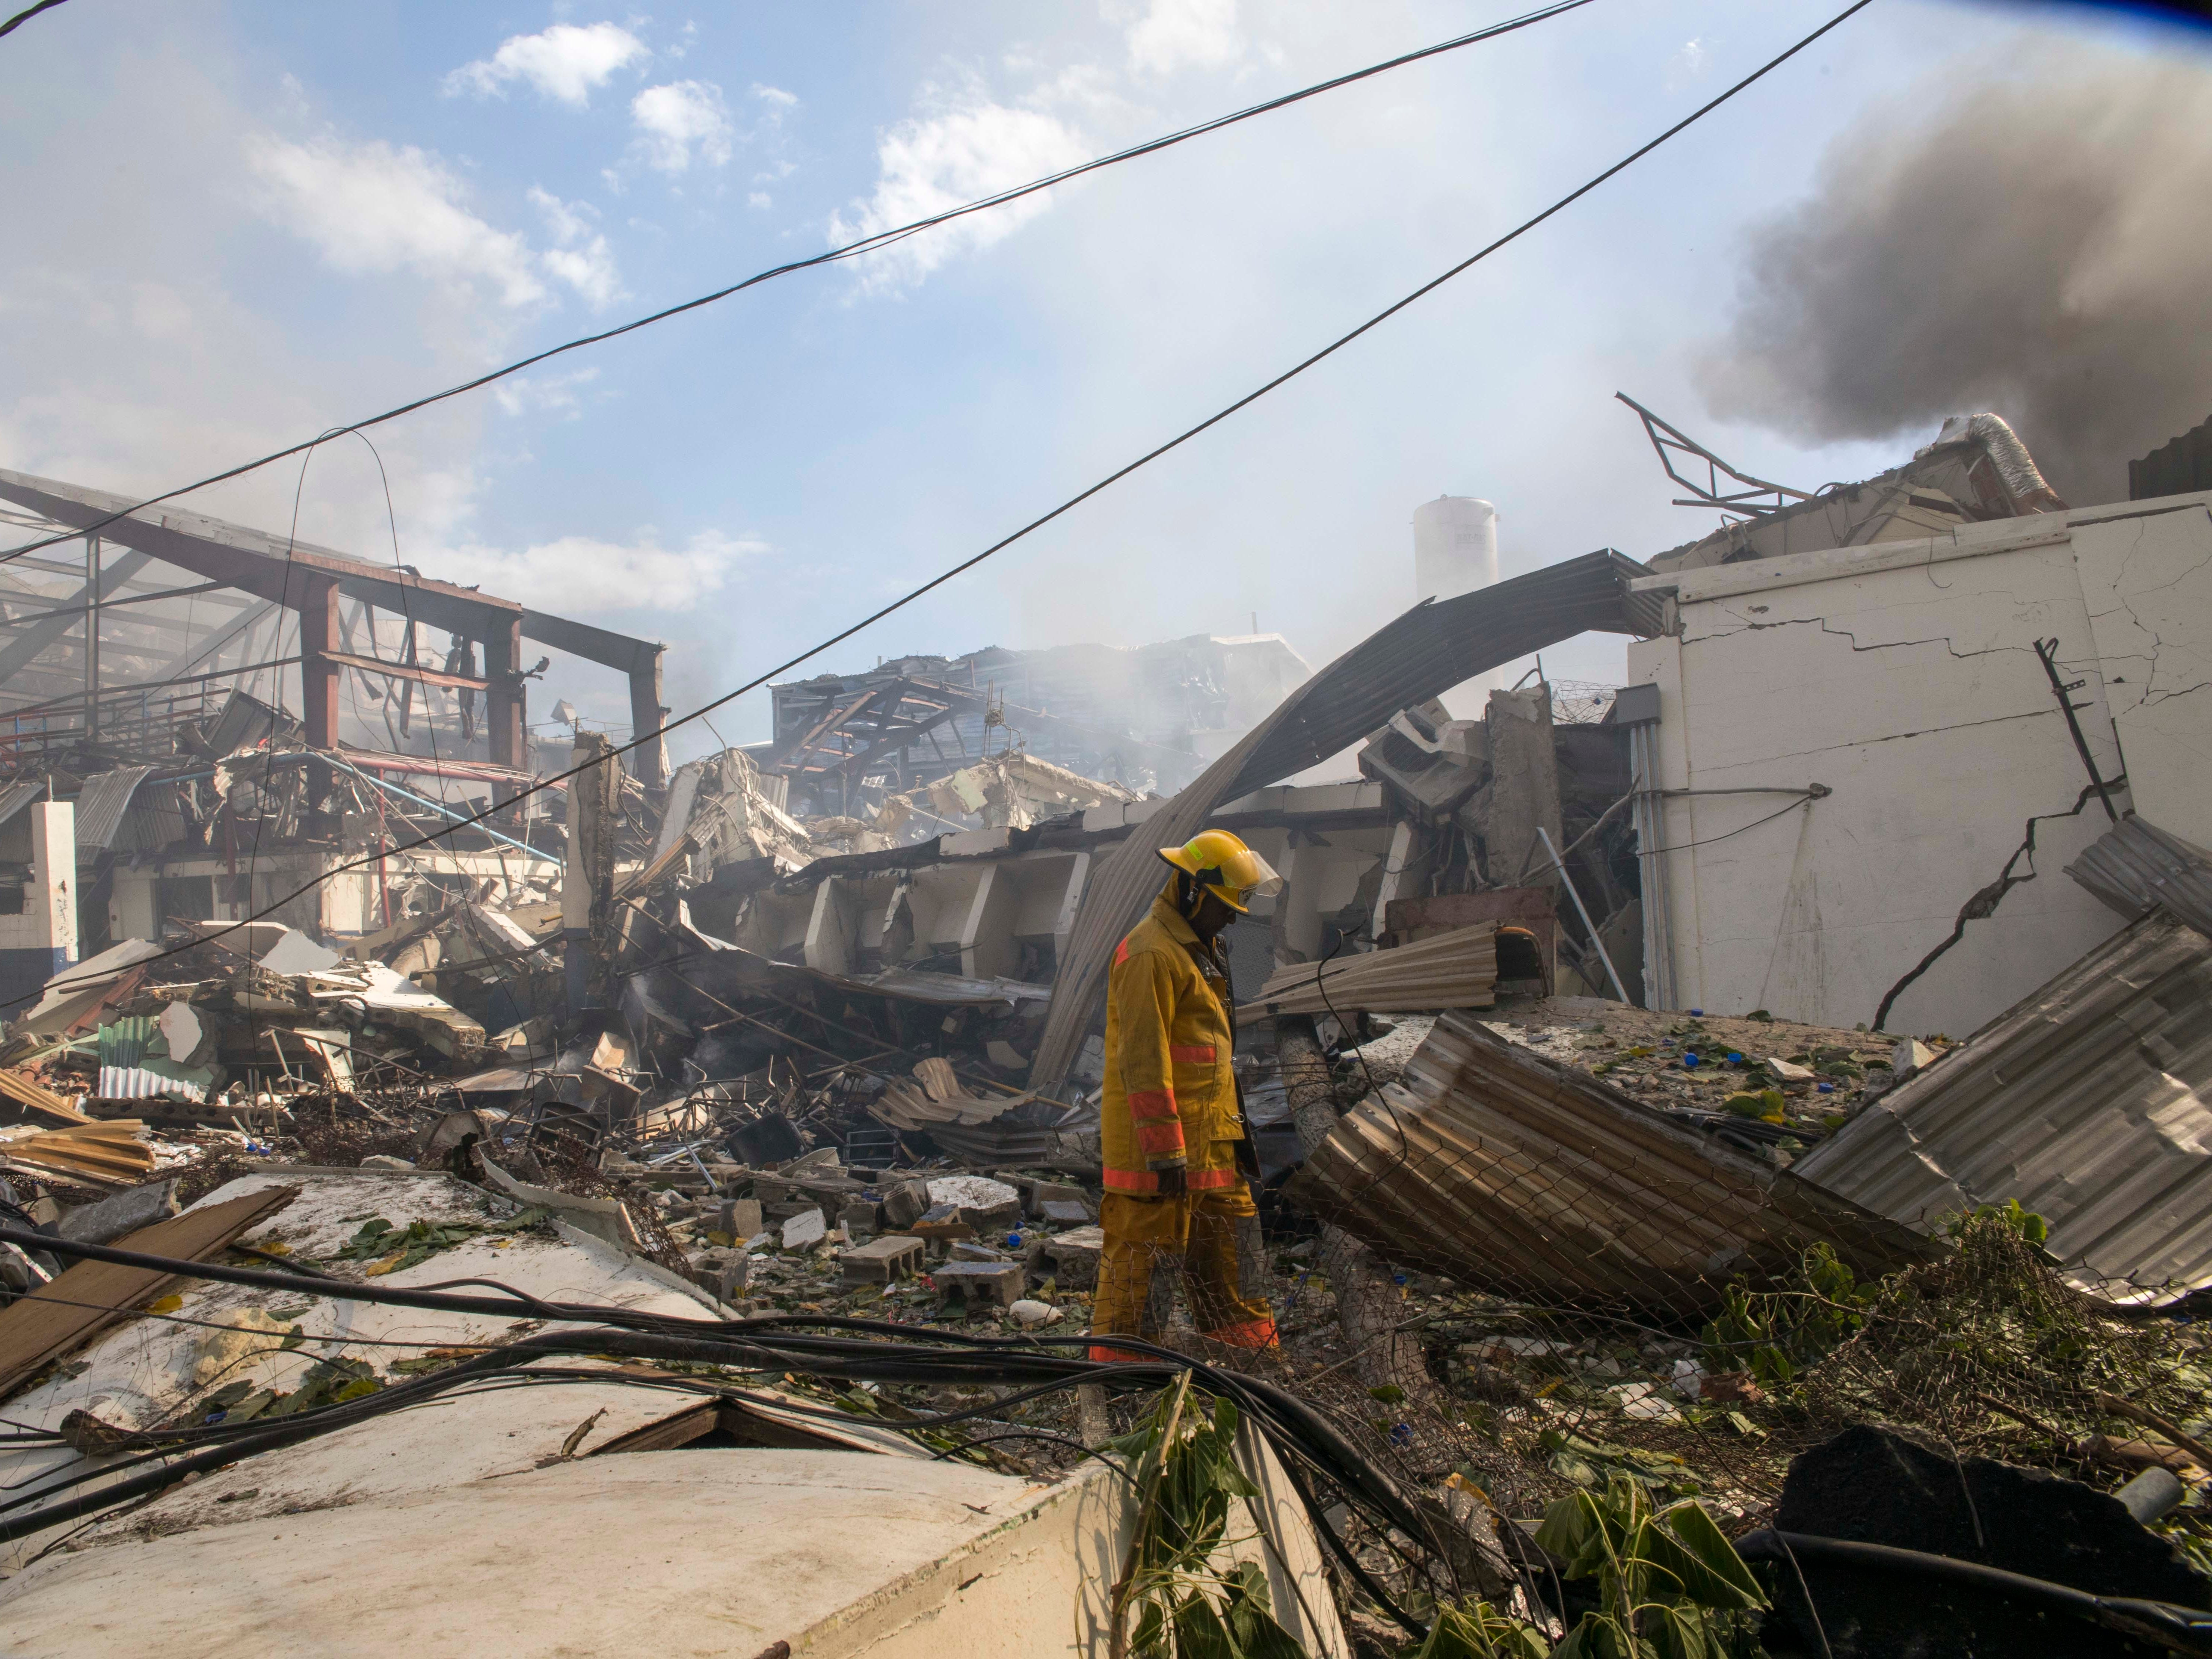 A firefighter walks through debris after an explosion at the Polyplas plant in the Villas Agricolas neighborhood in Santo Domingo, Dominican Republic, Wednesday, Dec. 5, 2018. The mayor told reporters the fire began when a boiler exploded in the early afternoon at the plastics company. Authorities say at least two people have died.